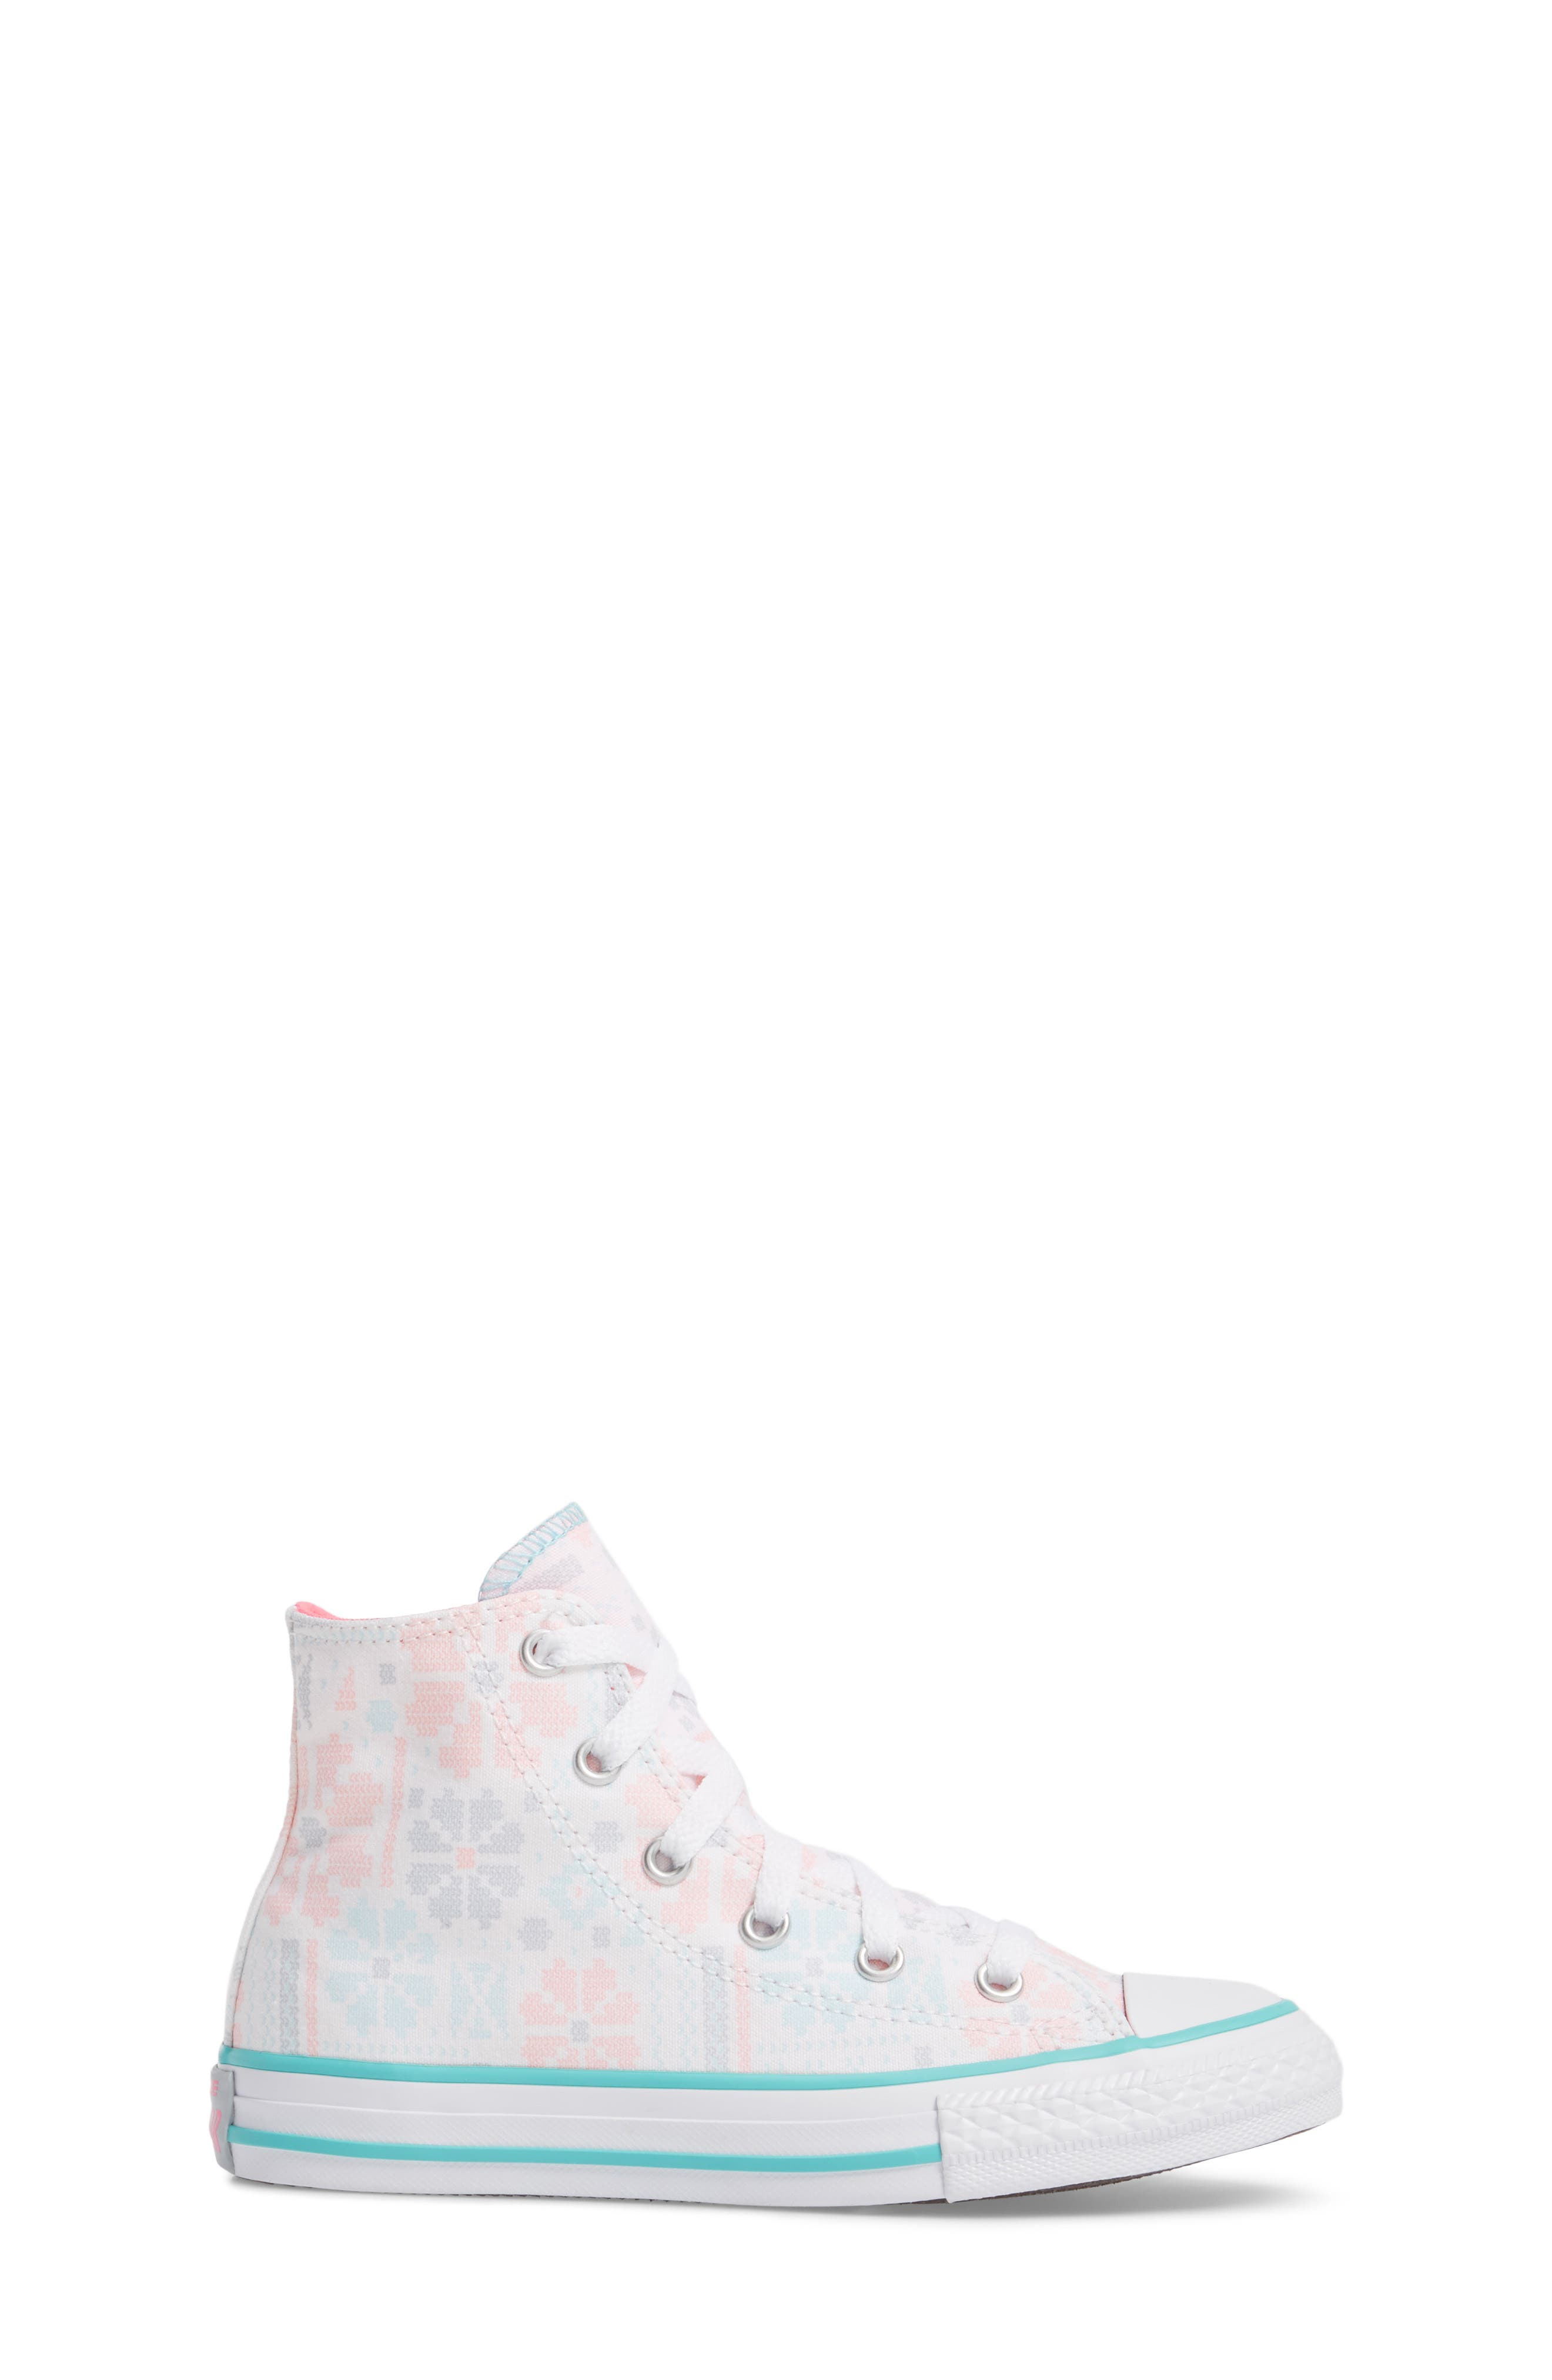 Chuck Taylor<sup>®</sup> All Star<sup>®</sup> High Top Sneaker,                             Alternate thumbnail 3, color,                             White/ Pink Canvas